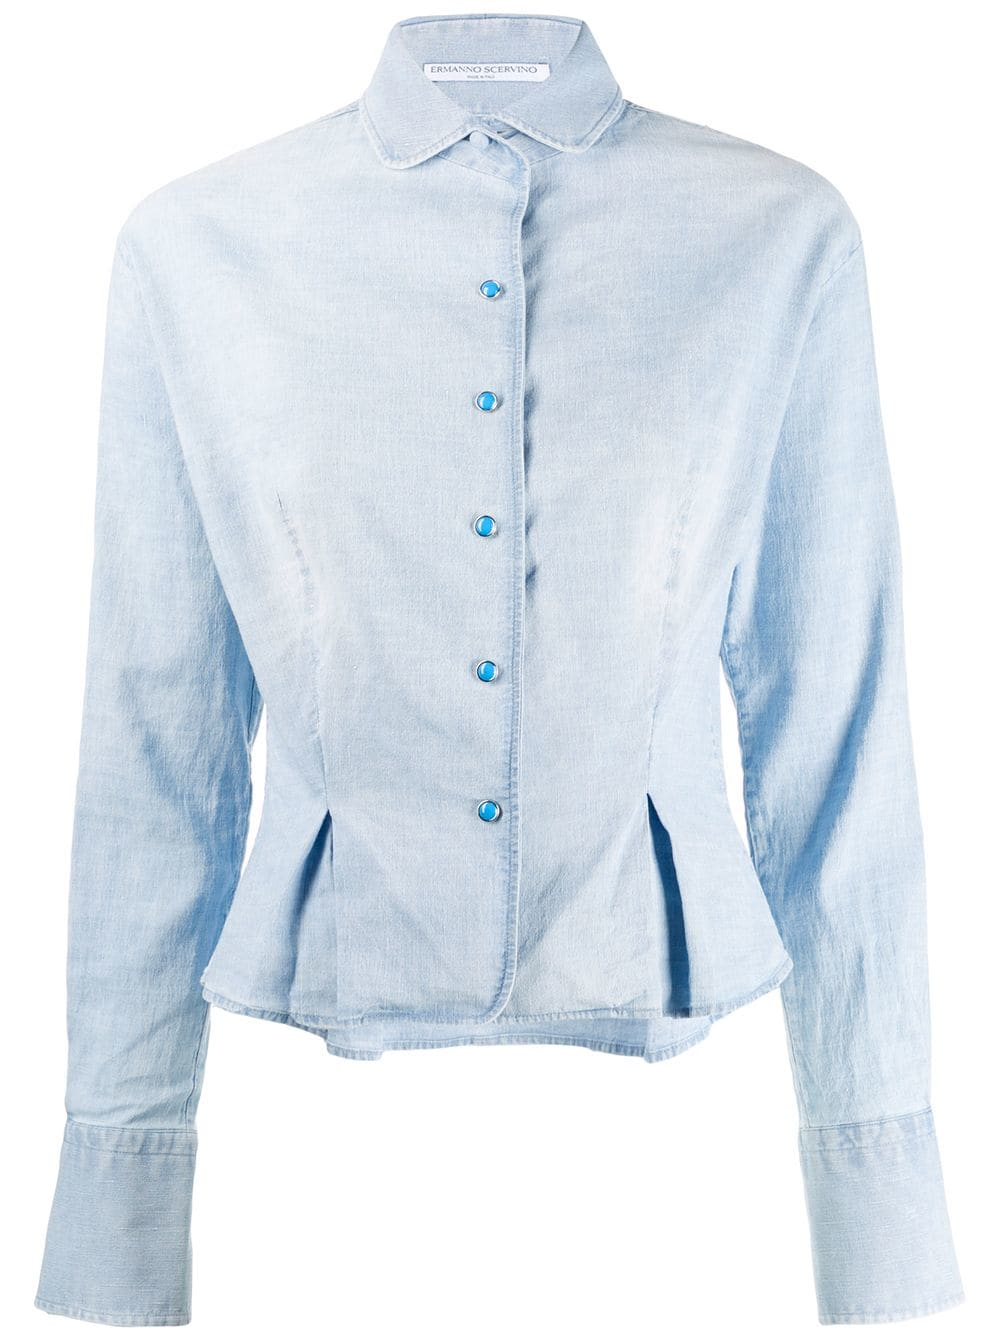 7699962dbb Camicia In Denim Celeste